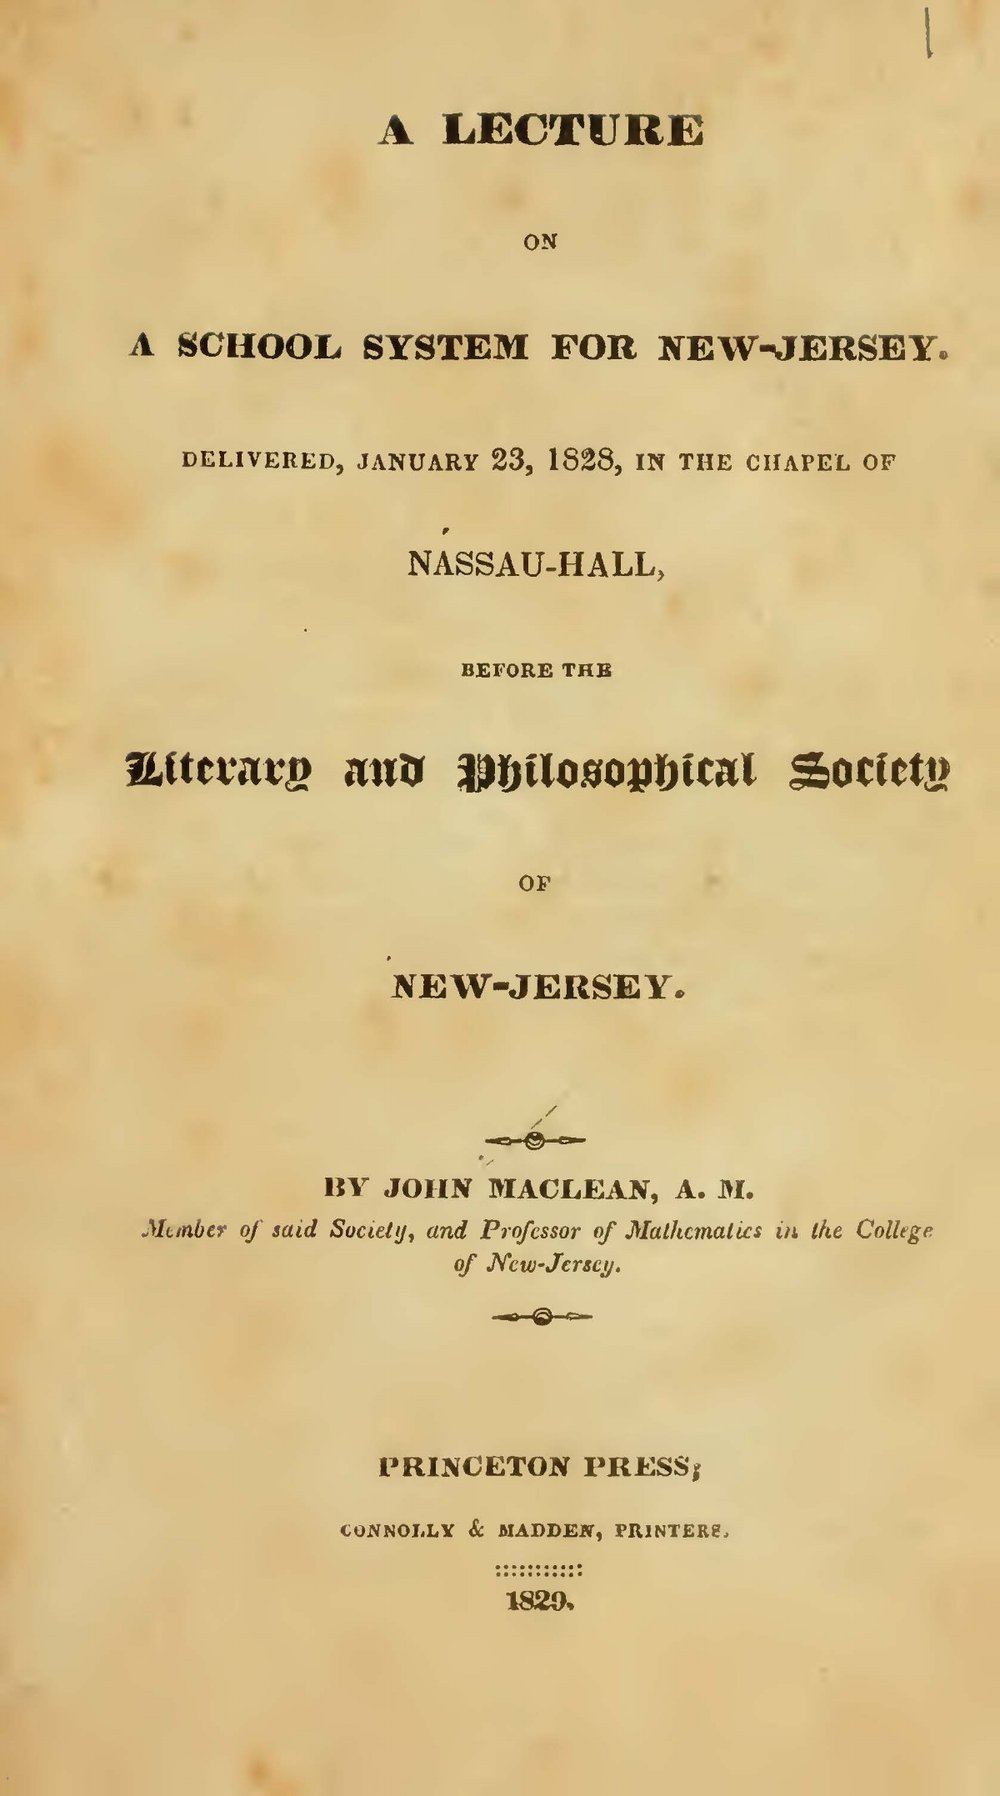 Maclean, John, Jr., A Lecture on a School System for New-Jersey Title Page.jpg